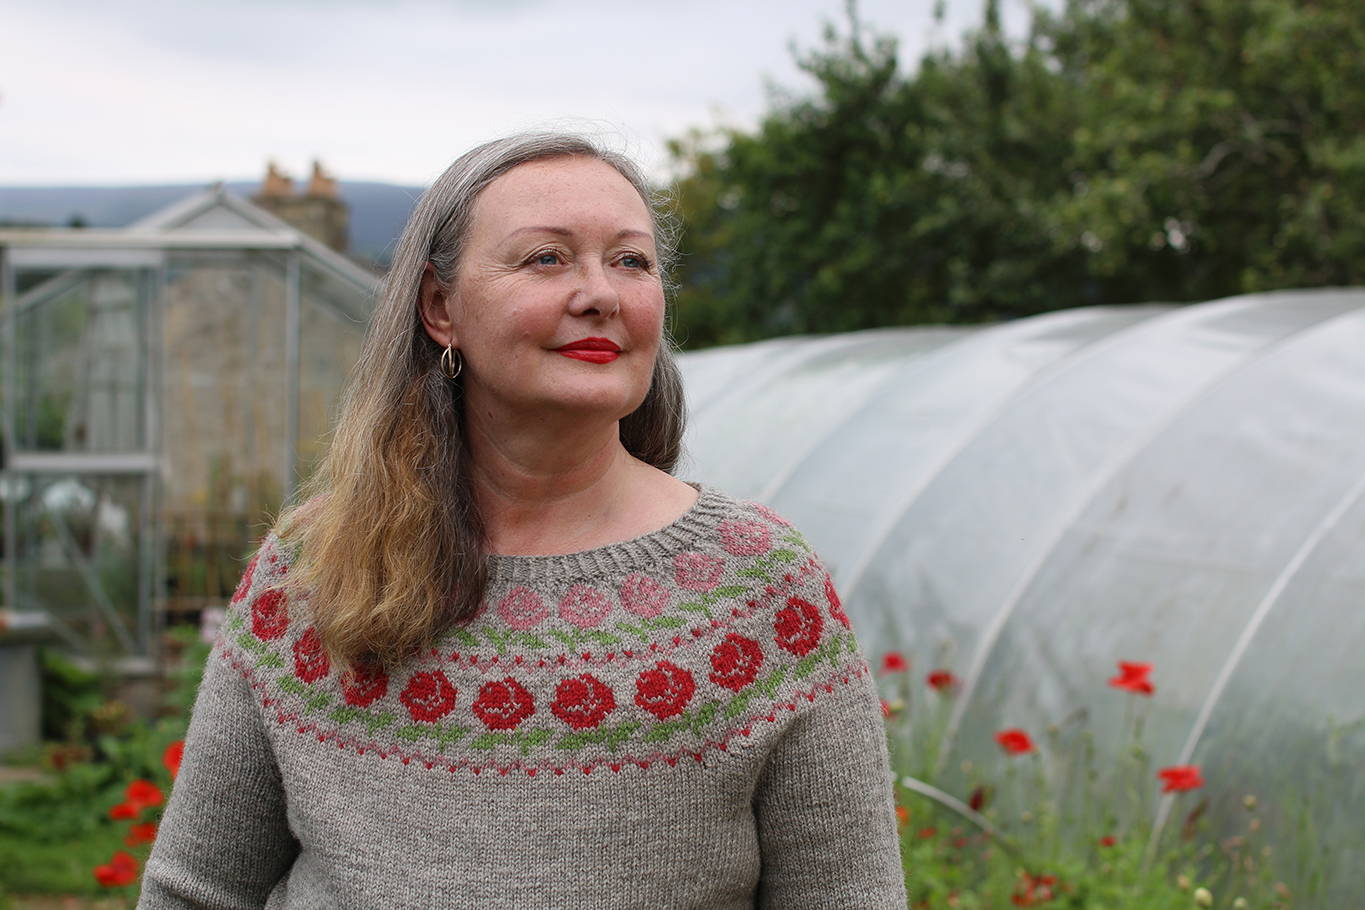 A woman wearing a grey sweater with a decorative yoke looking away from the camera with a green house and poly tunnel behind her